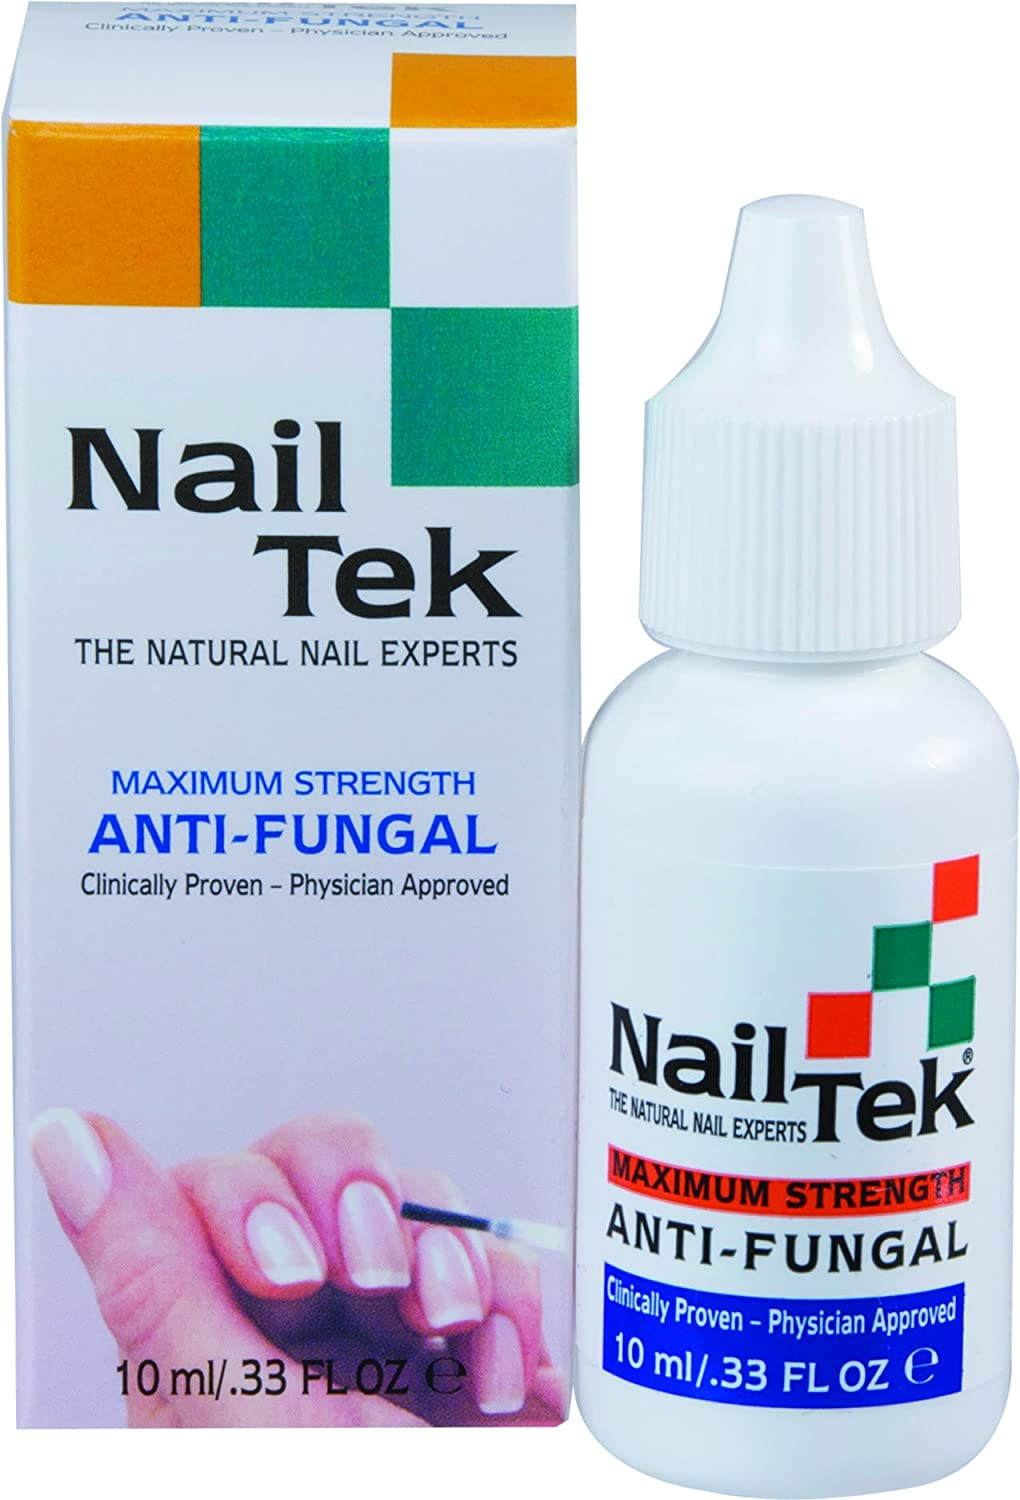 Nailtek Maximum Strength Anti-Fungal, 0.33 Fluid Ounce 865